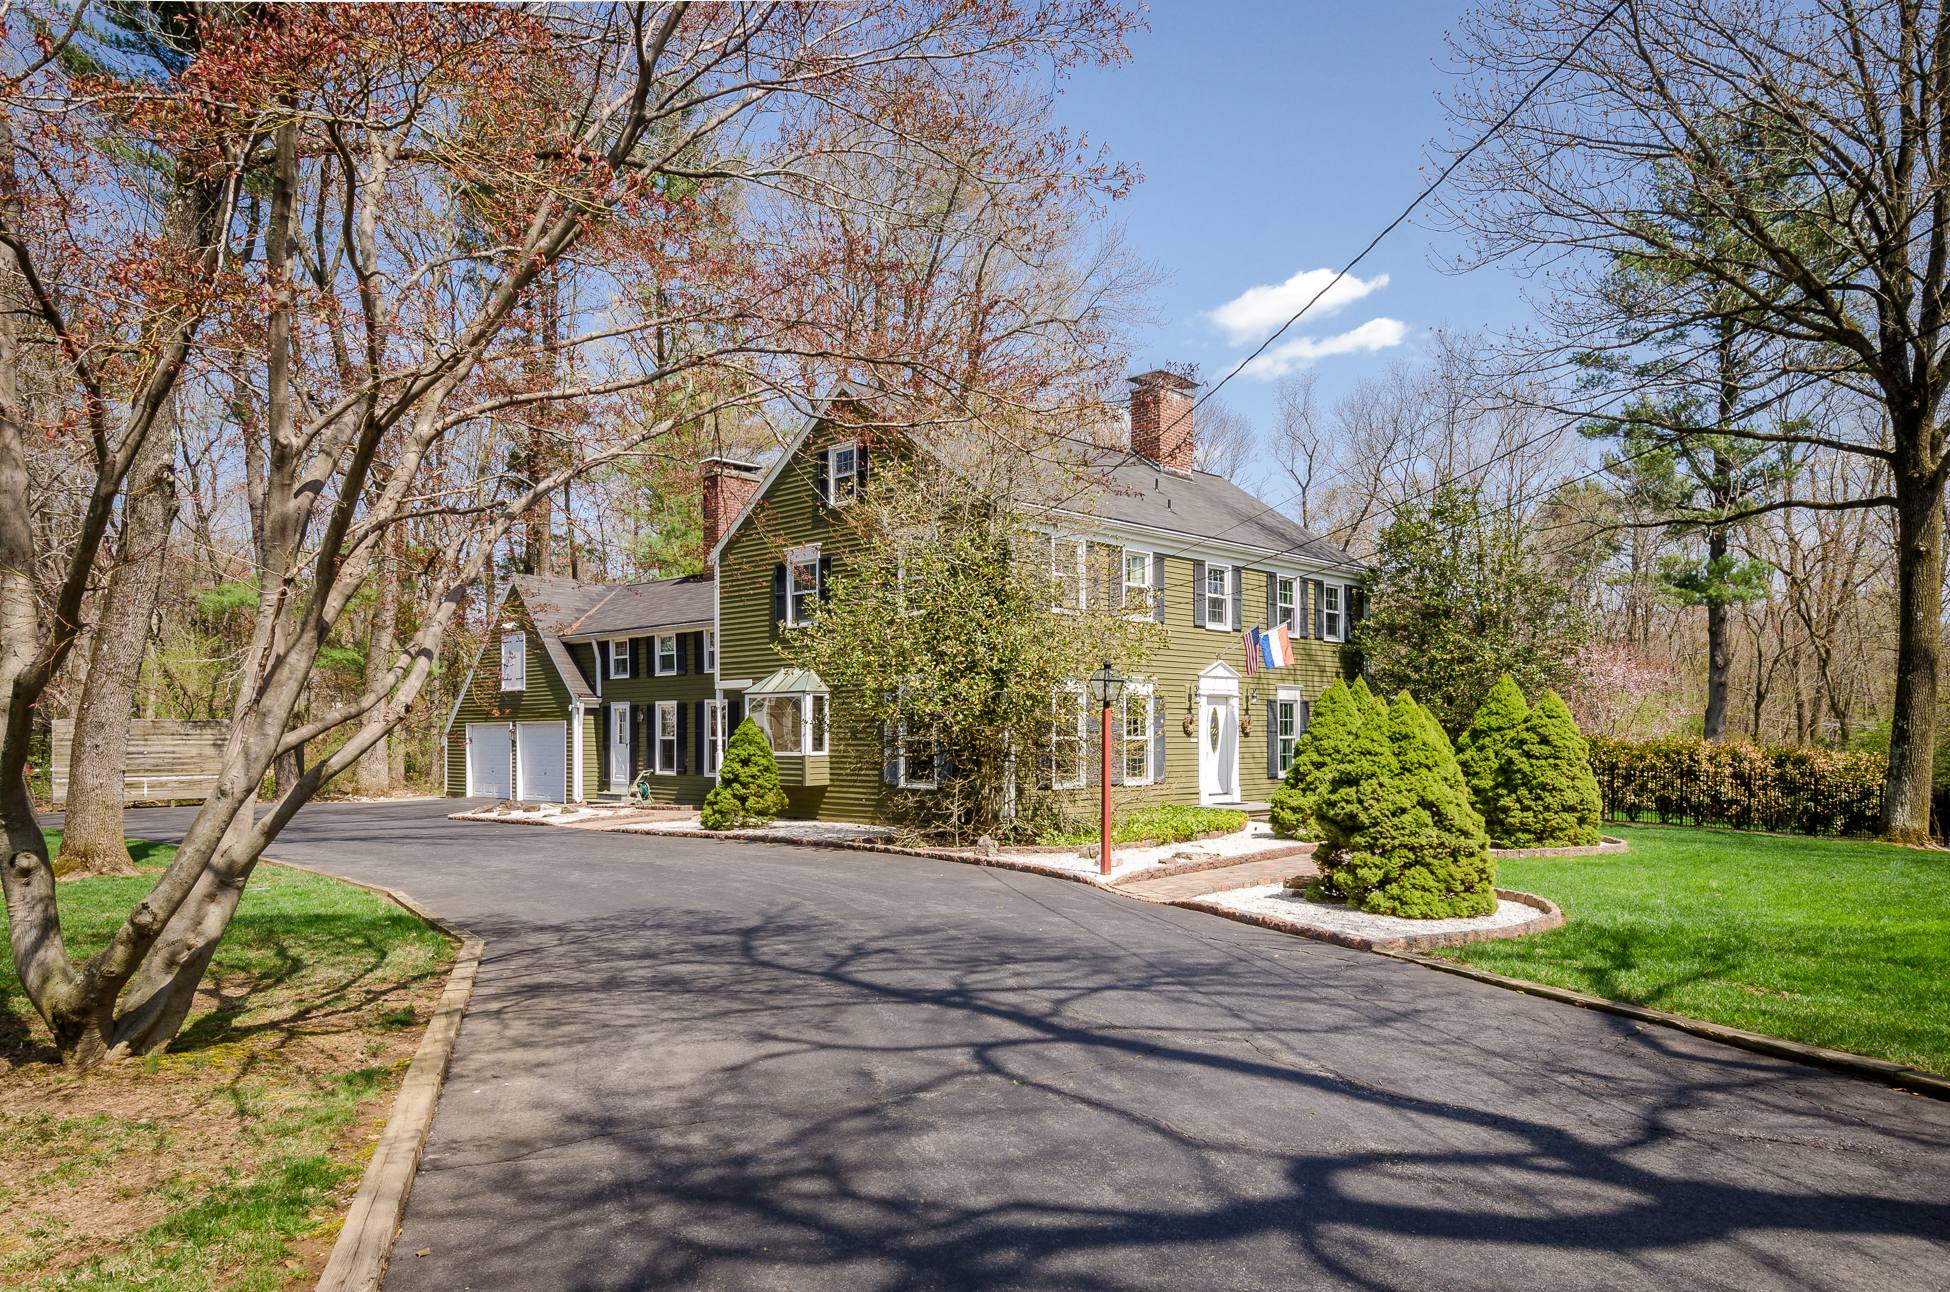 Casa Unifamiliar por un Venta en The Epitome of Welcoming Elegance in Princeton 4371 Province Line Road Princeton, Nueva Jersey 08540 Estados Unidos